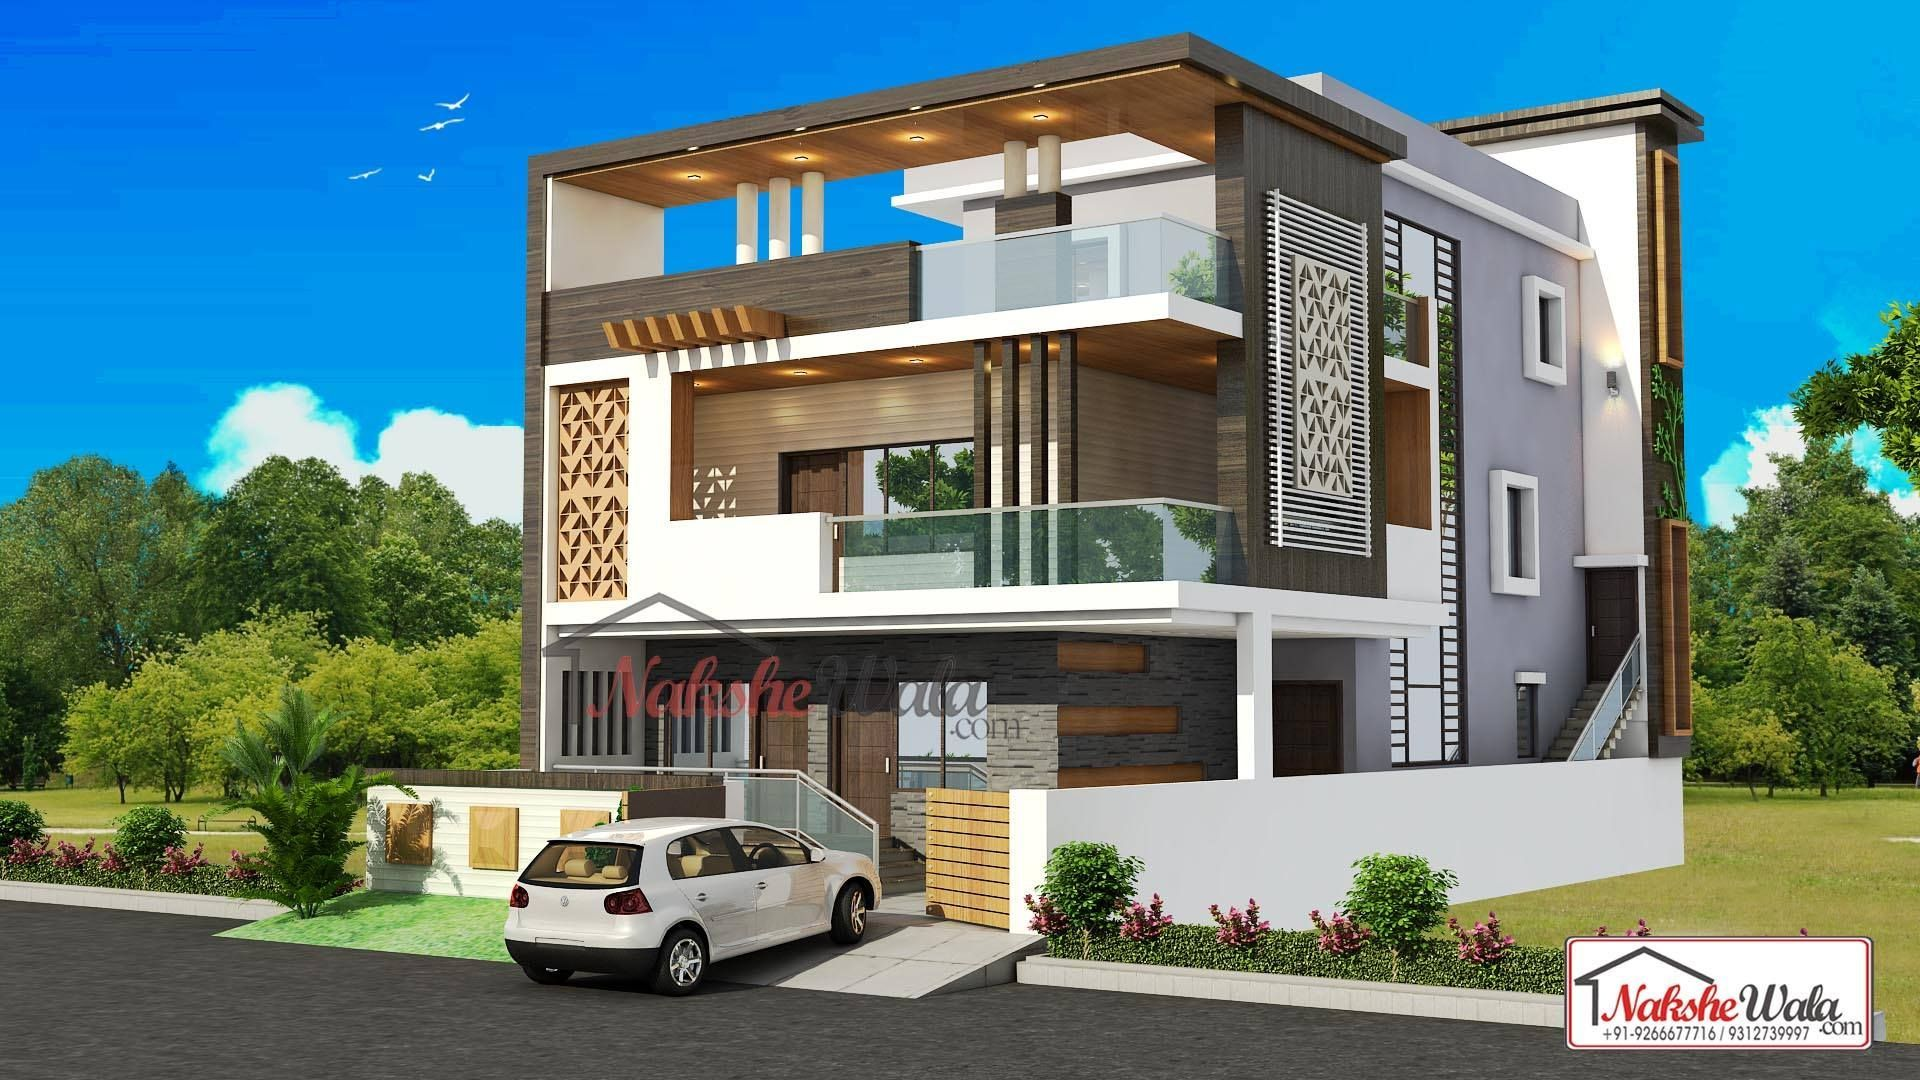 Awesome Front Elevation Designs For Double Floor House And View Small House Elevation Design Duplex House Design House Exterior